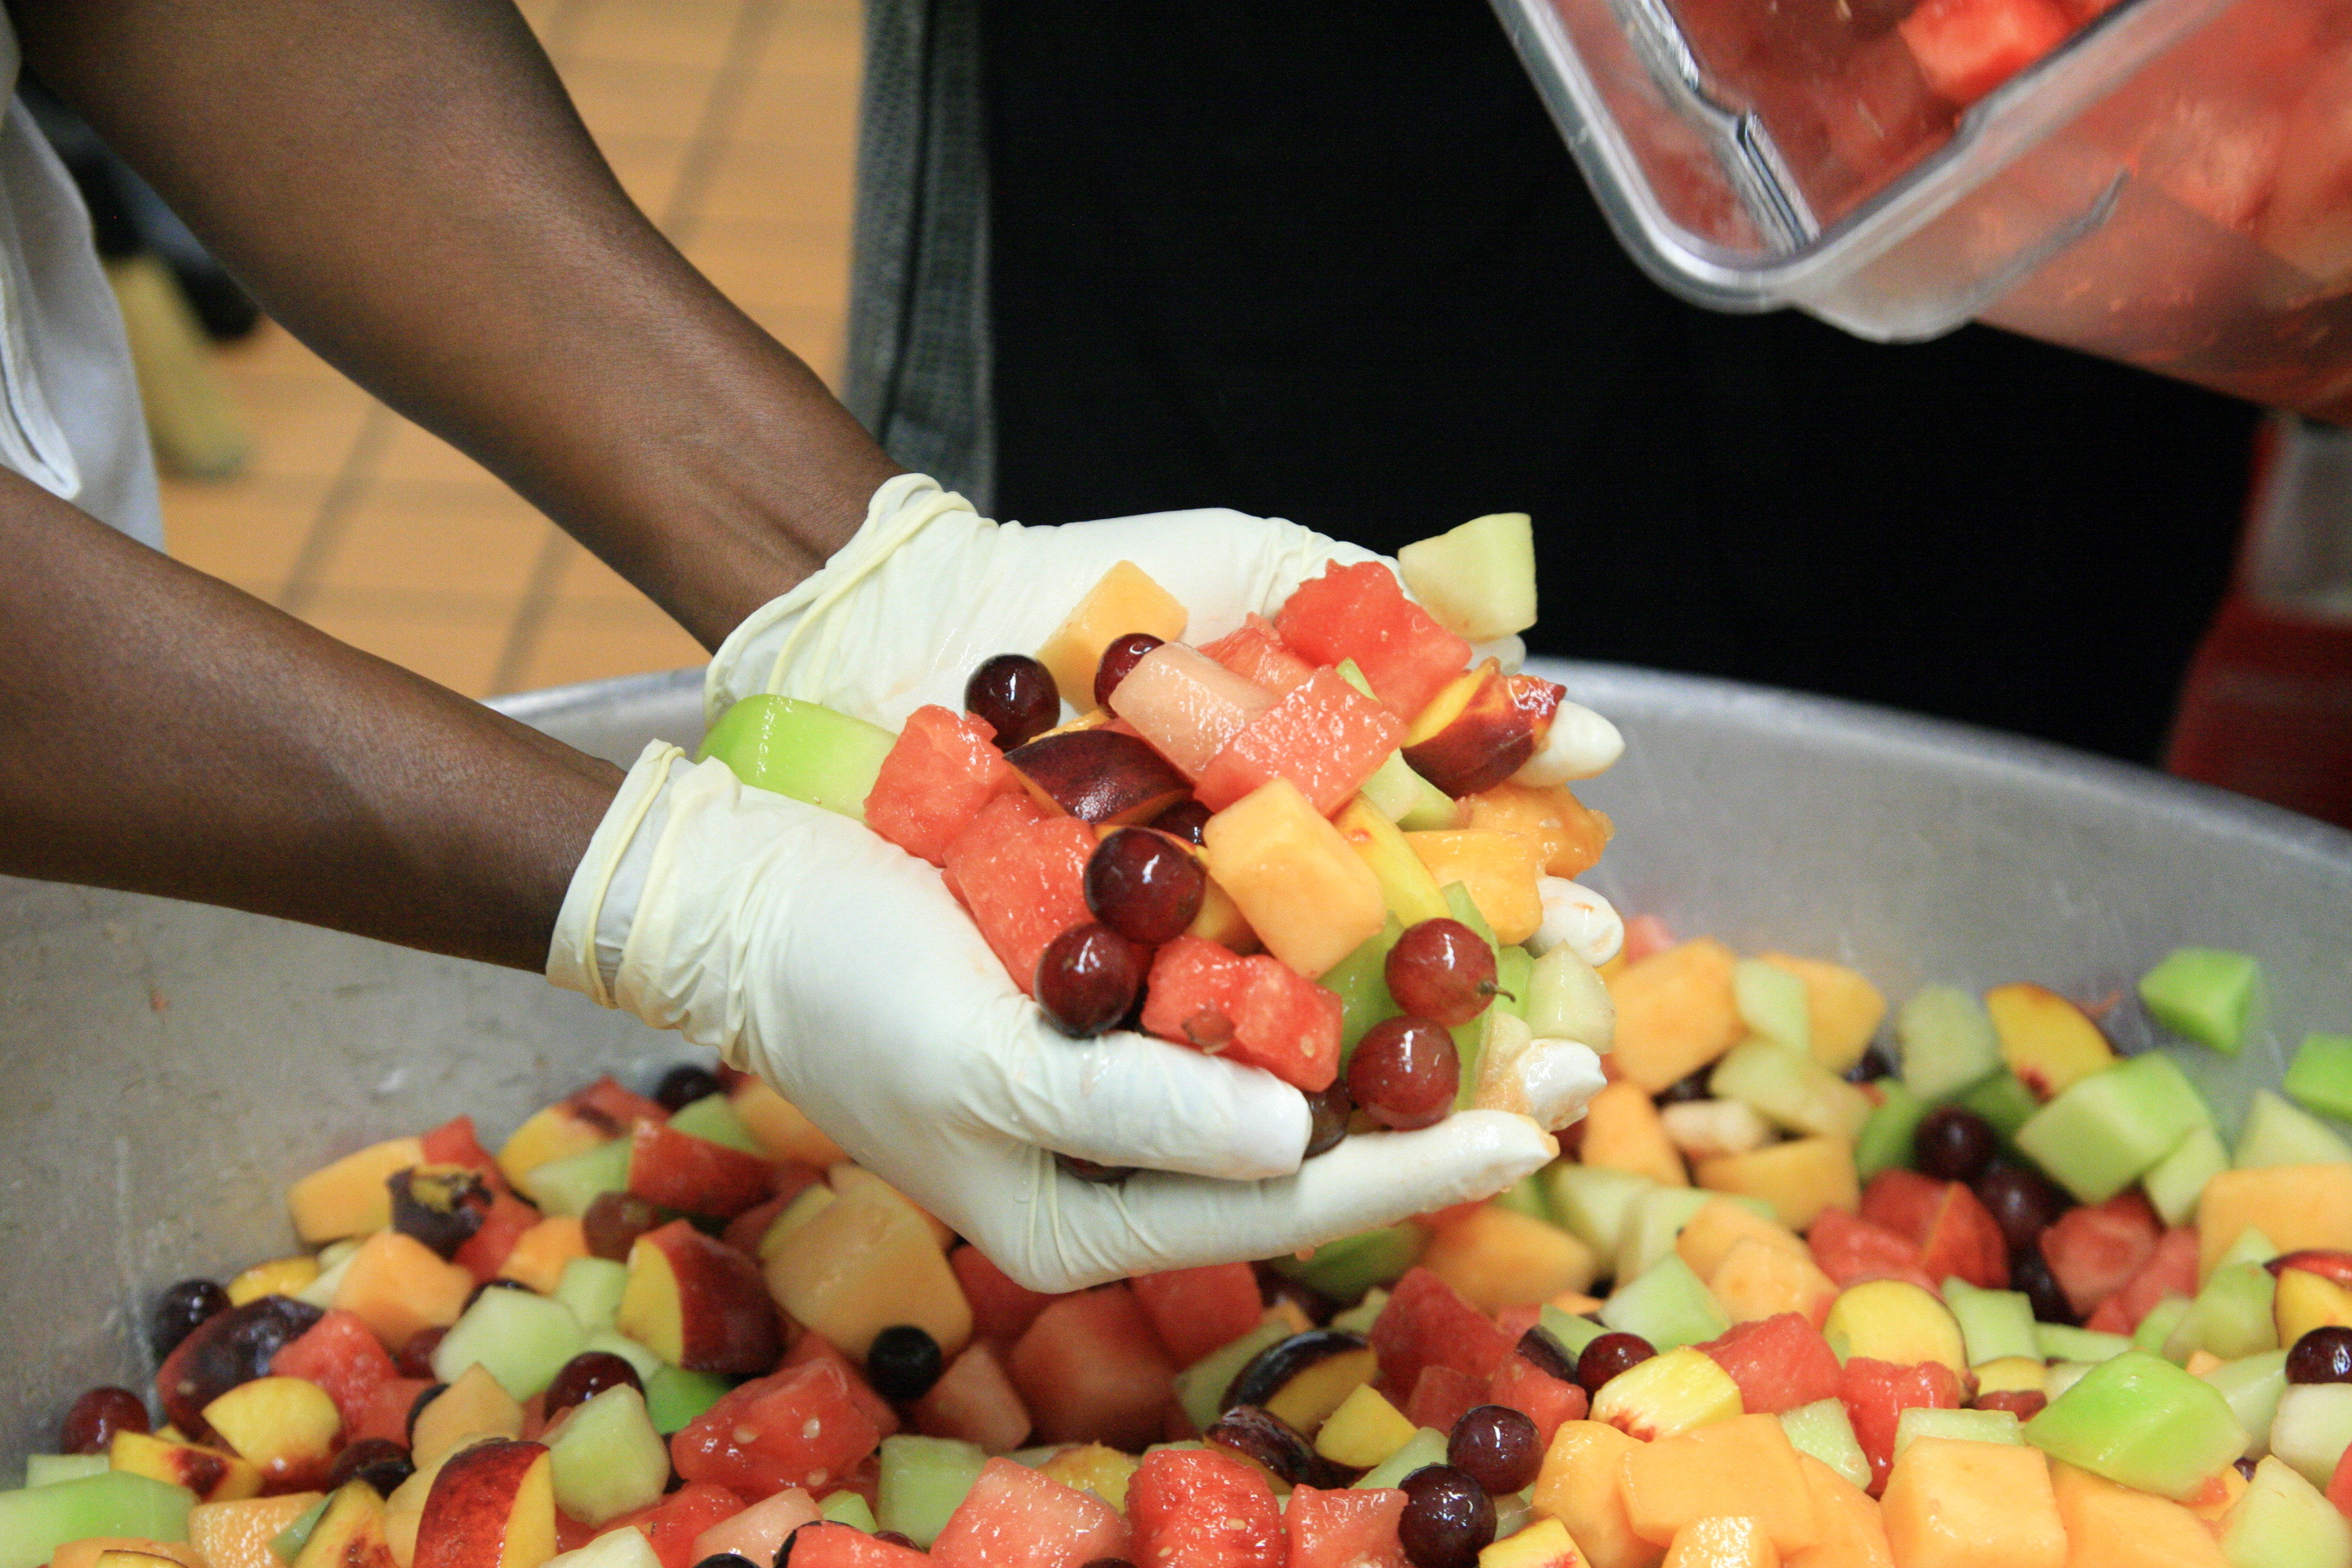 Gloved hands mixing a bowl of fruit salad